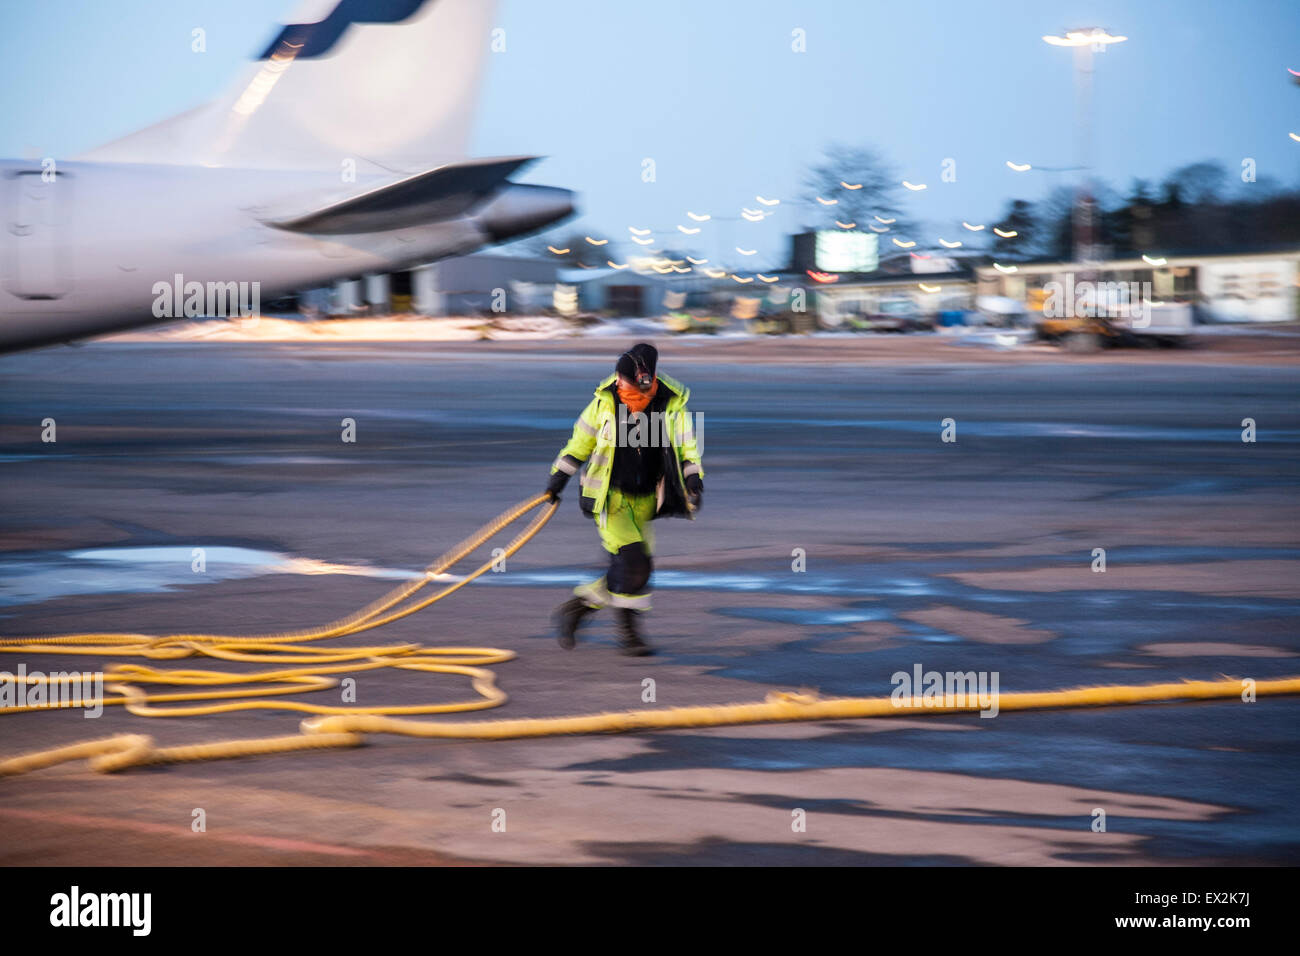 A serviceman on the ground at an airport - Stock Image